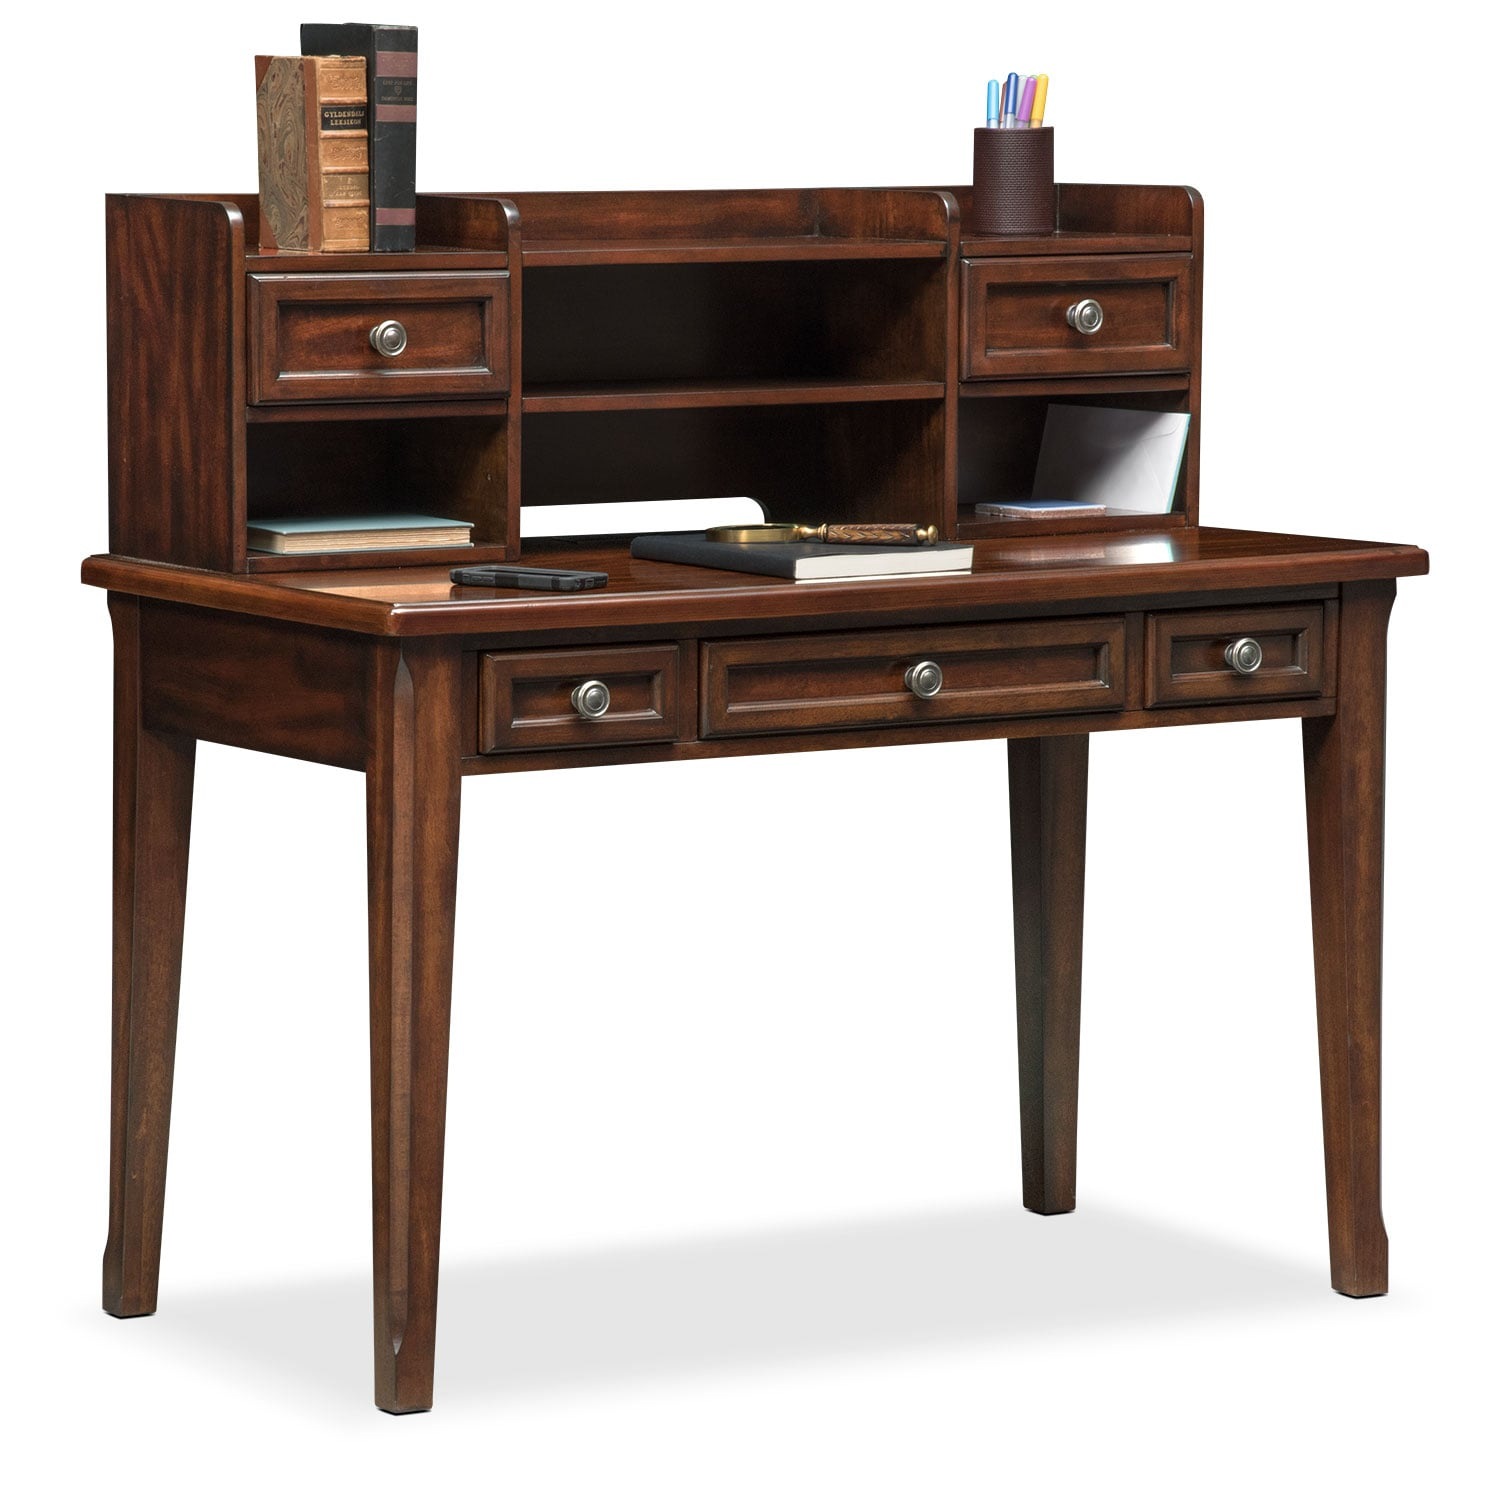 Hanover Youth Desk and Hutch - Cherry